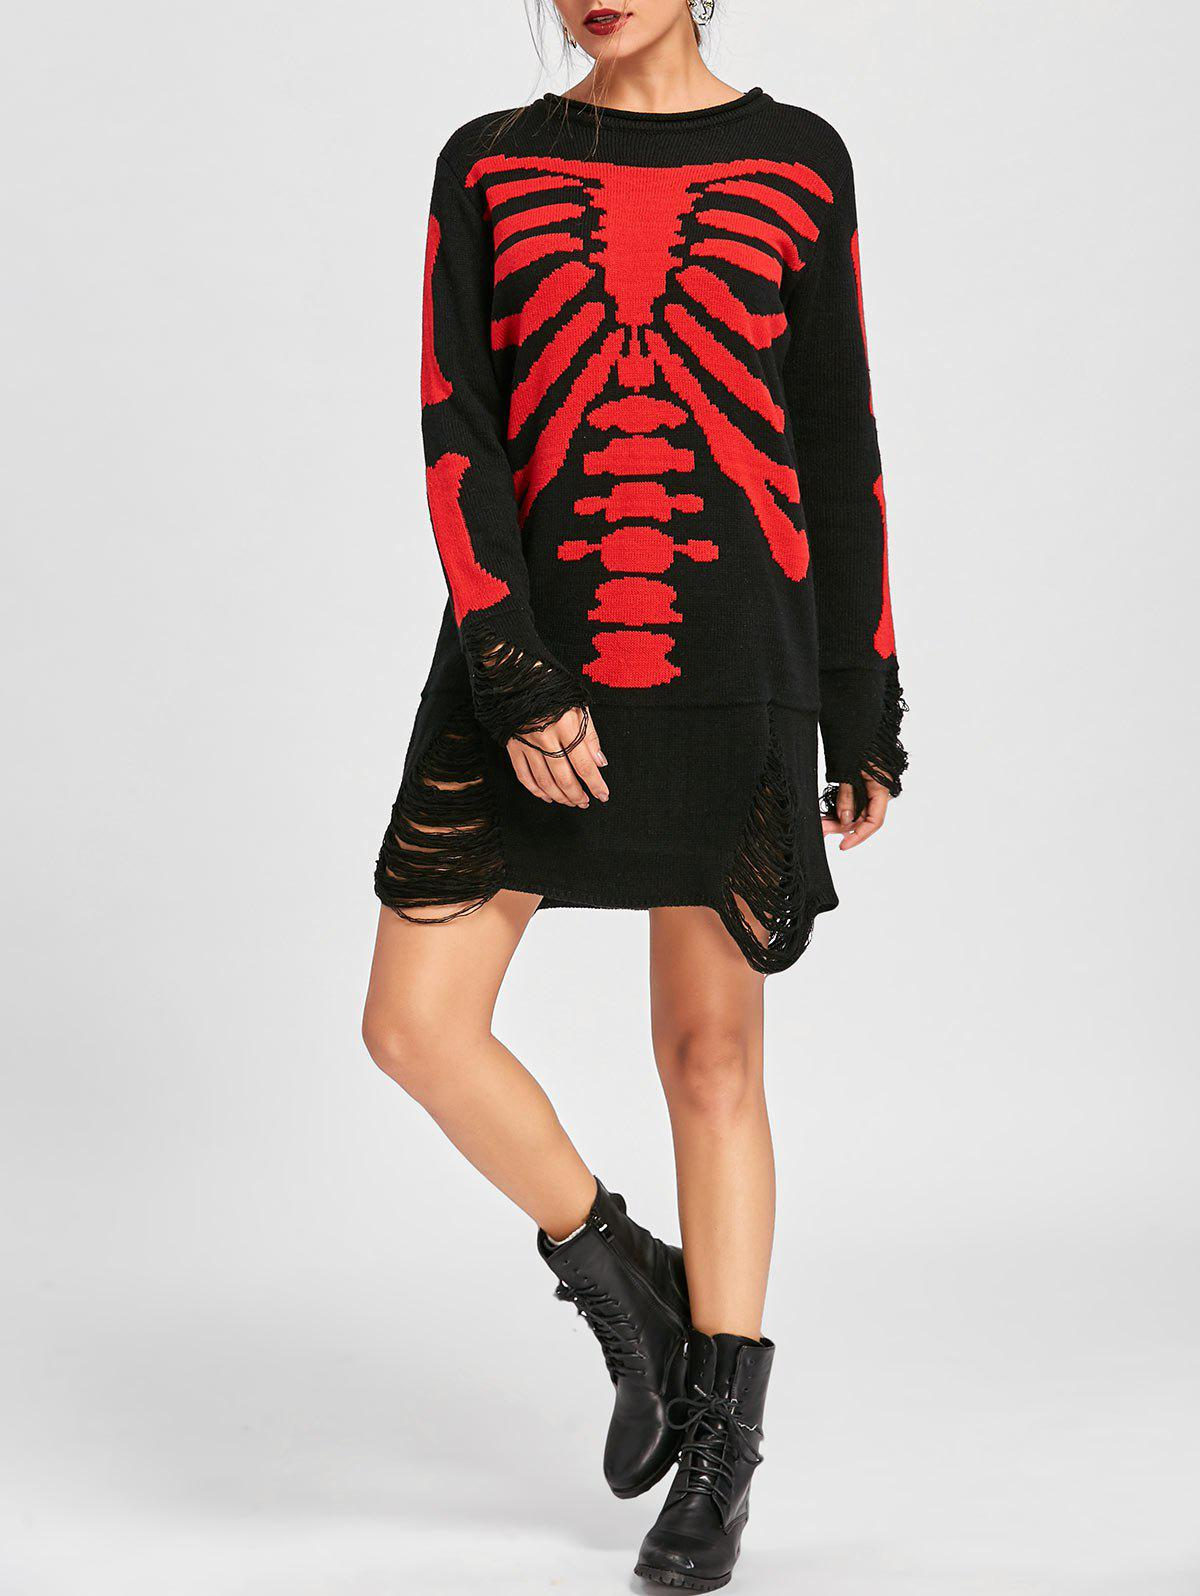 Halloween Distressed Skeleton Jumper DressWOMEN<br><br>Size: M; Color: BLACK RED; Style: Brief; Material: Acrylic; Silhouette: Straight; Dresses Length: Mini; Neckline: Crew Neck; Sleeve Length: Long Sleeves; Pattern Type: Skeleton; With Belt: No; Season: Fall,Spring; Weight: 0.5200kg; Package Contents: 1 x Dress; Occasion: Causal,Club,Night Out;